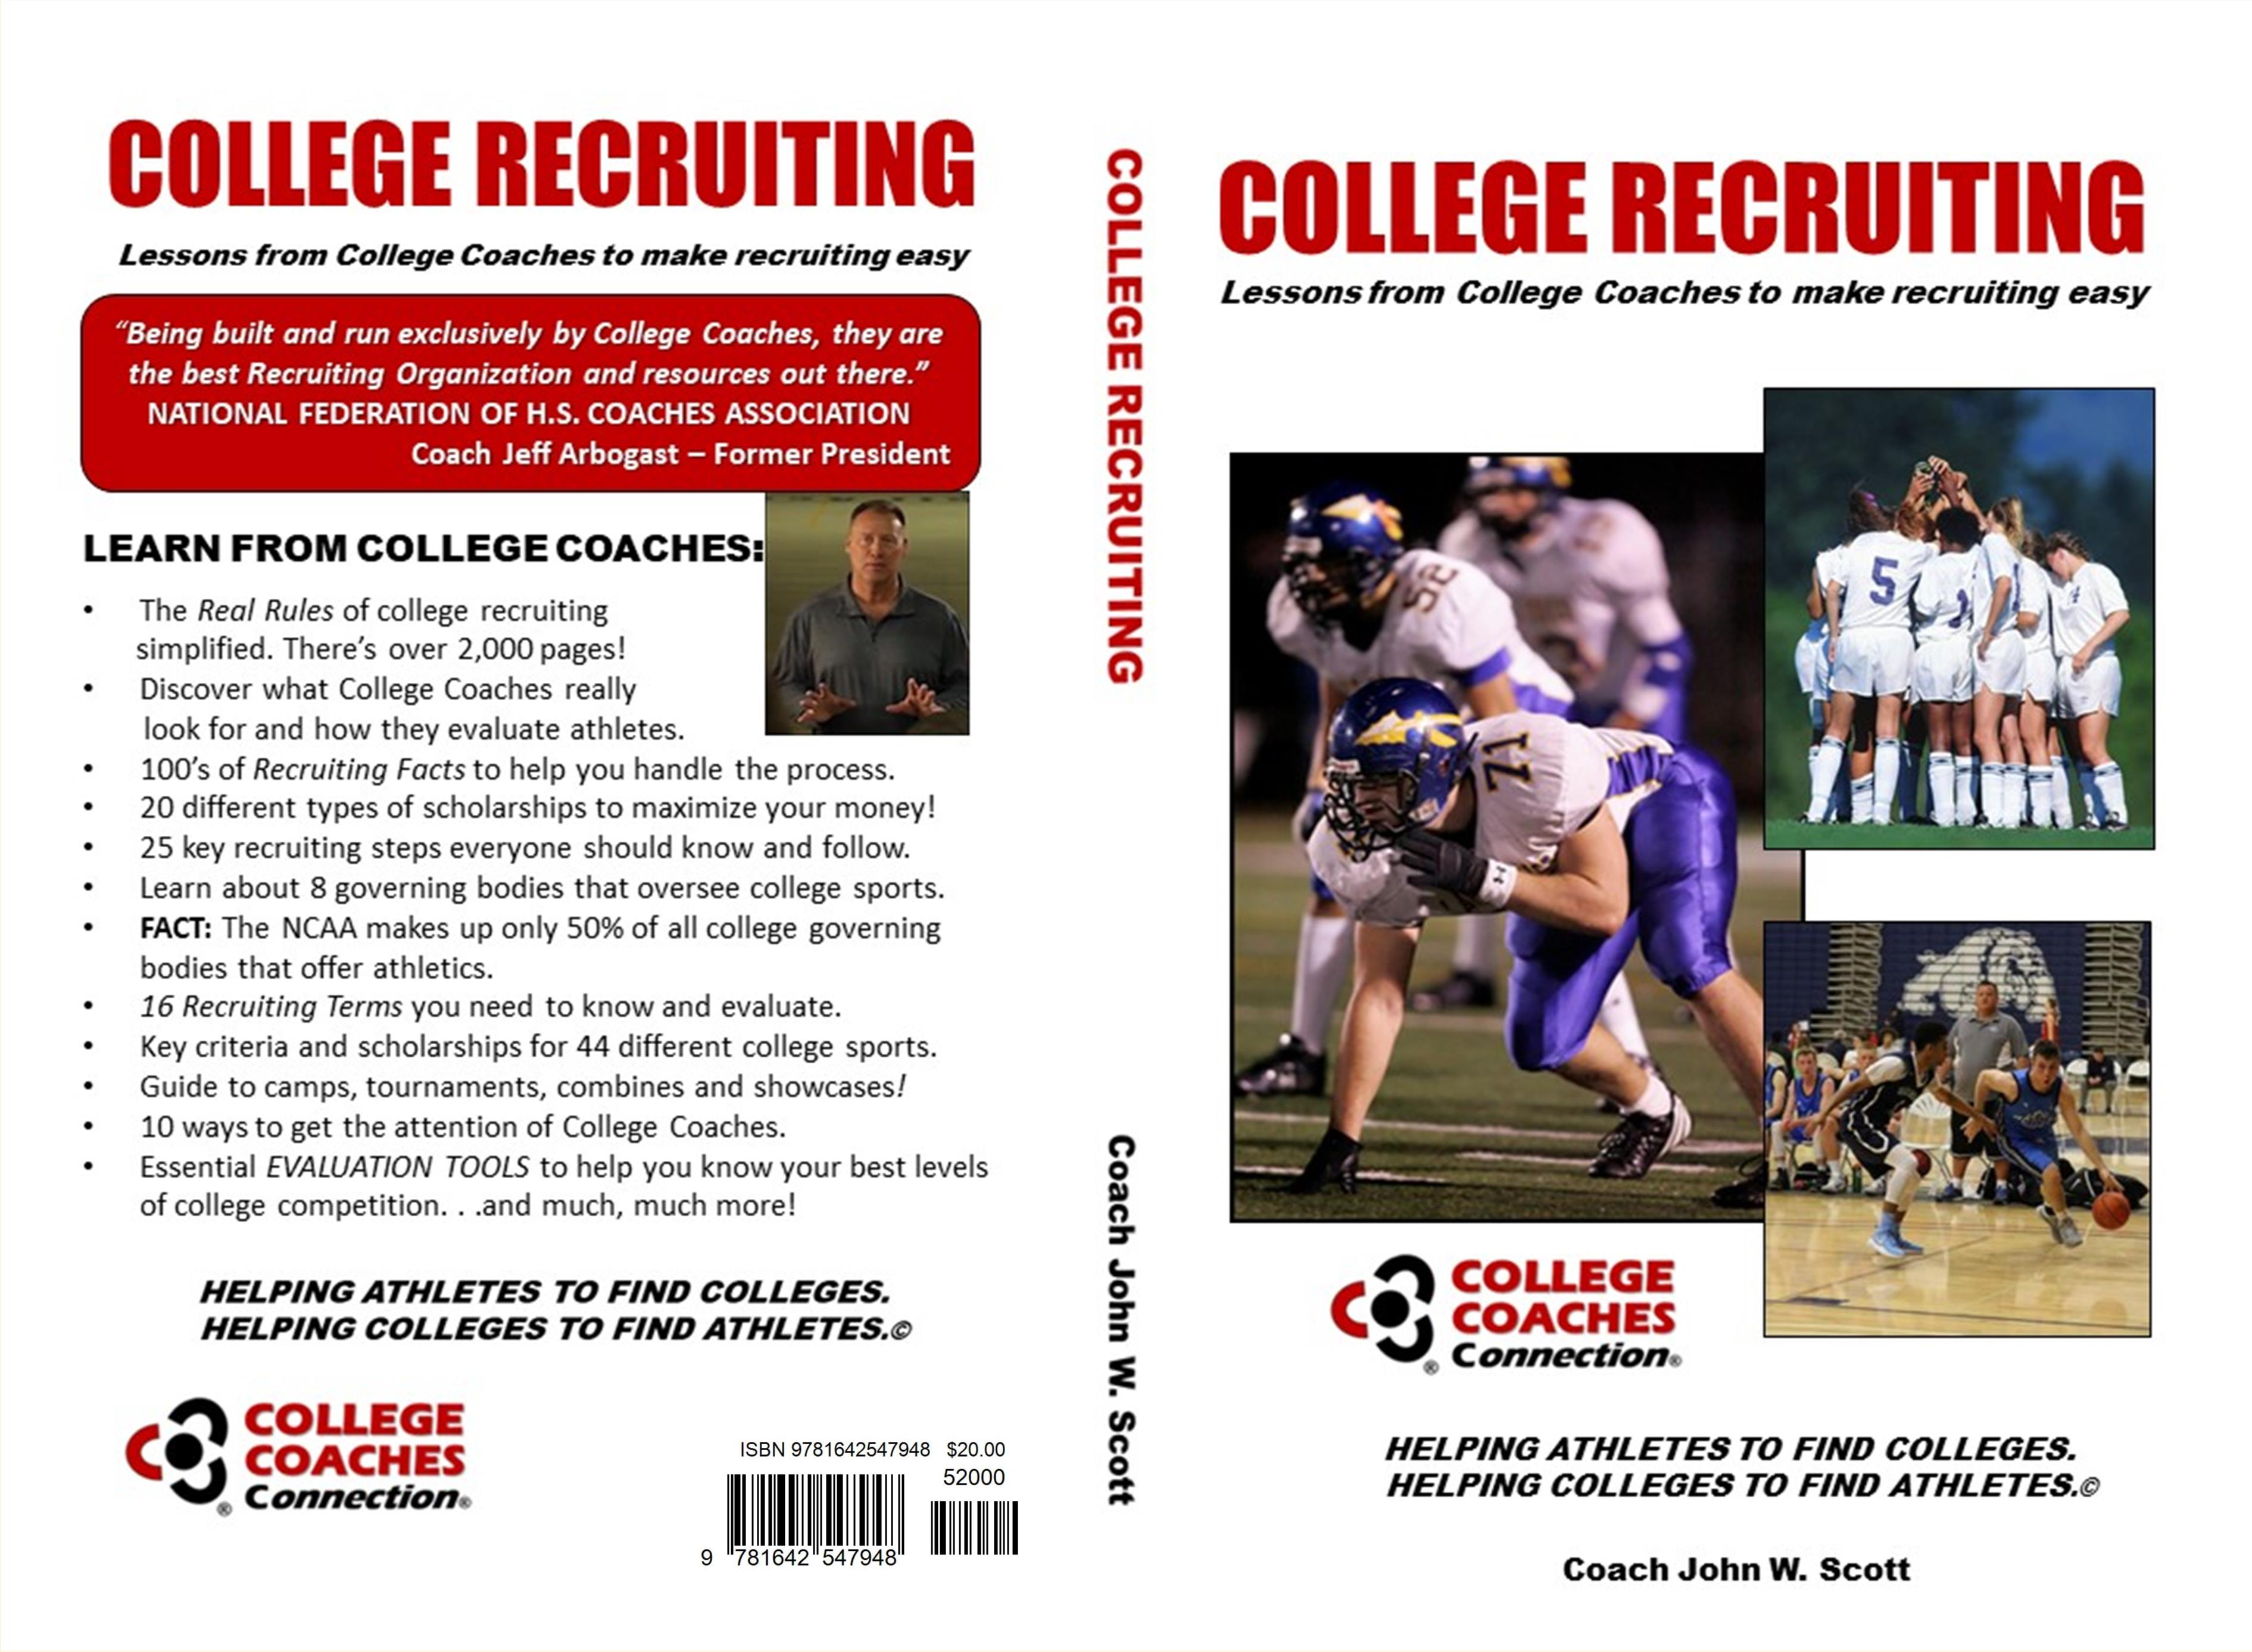 COLLEGE RECRUITING cover image